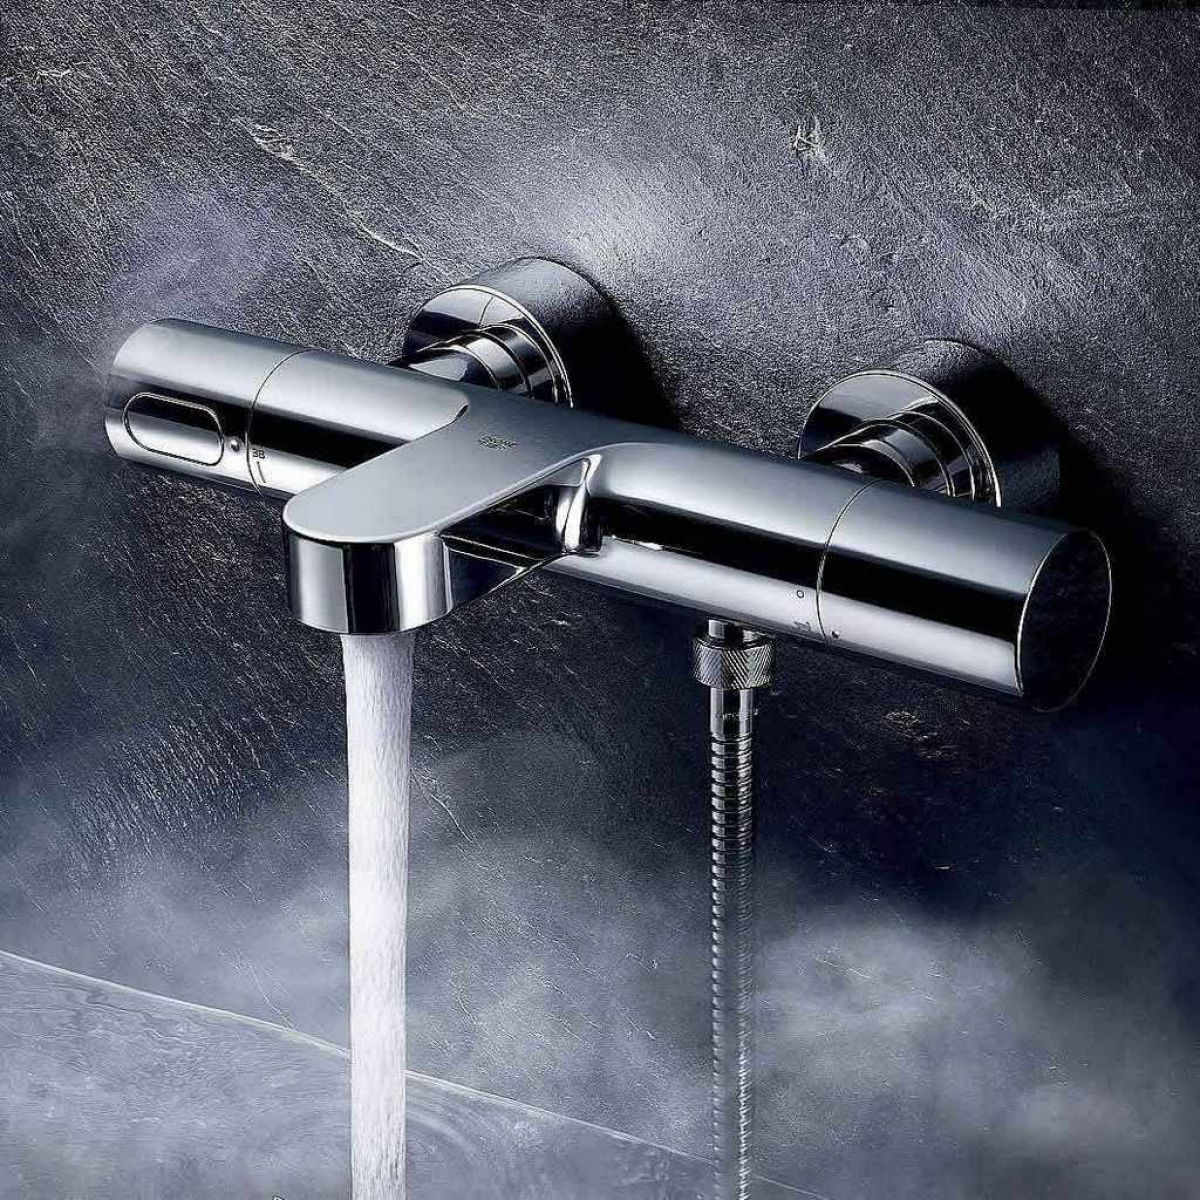 grohe grohtherm 3000 cosmopolitan thermostatic bath shower mixer uk bathrooms. Black Bedroom Furniture Sets. Home Design Ideas